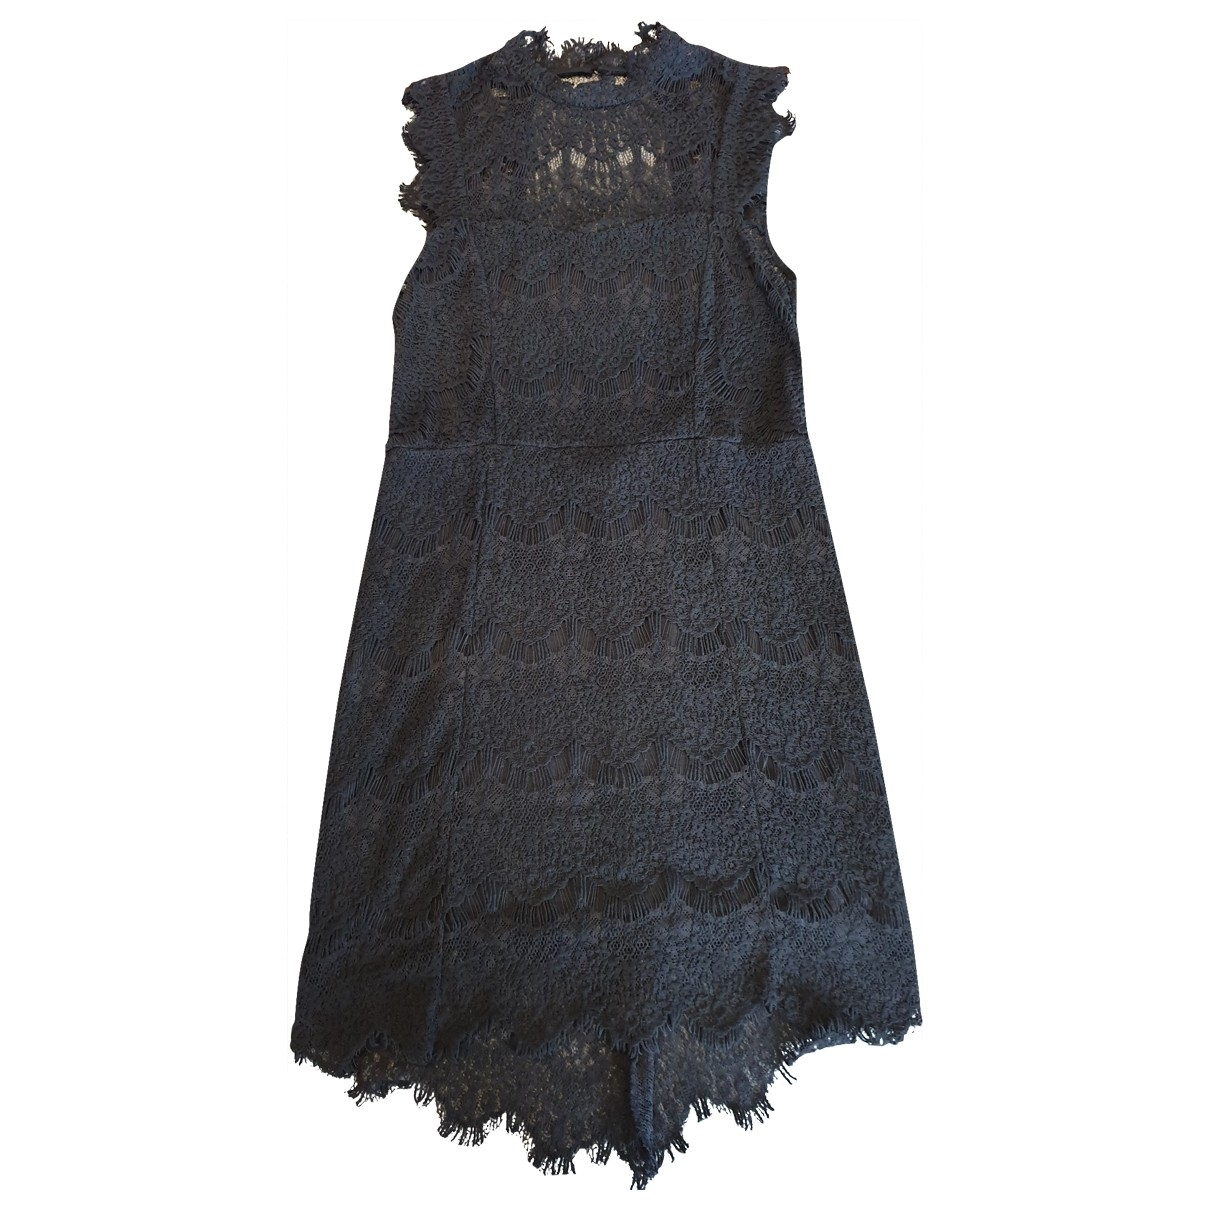 Free People \N Black Cotton dress for Women 8 US